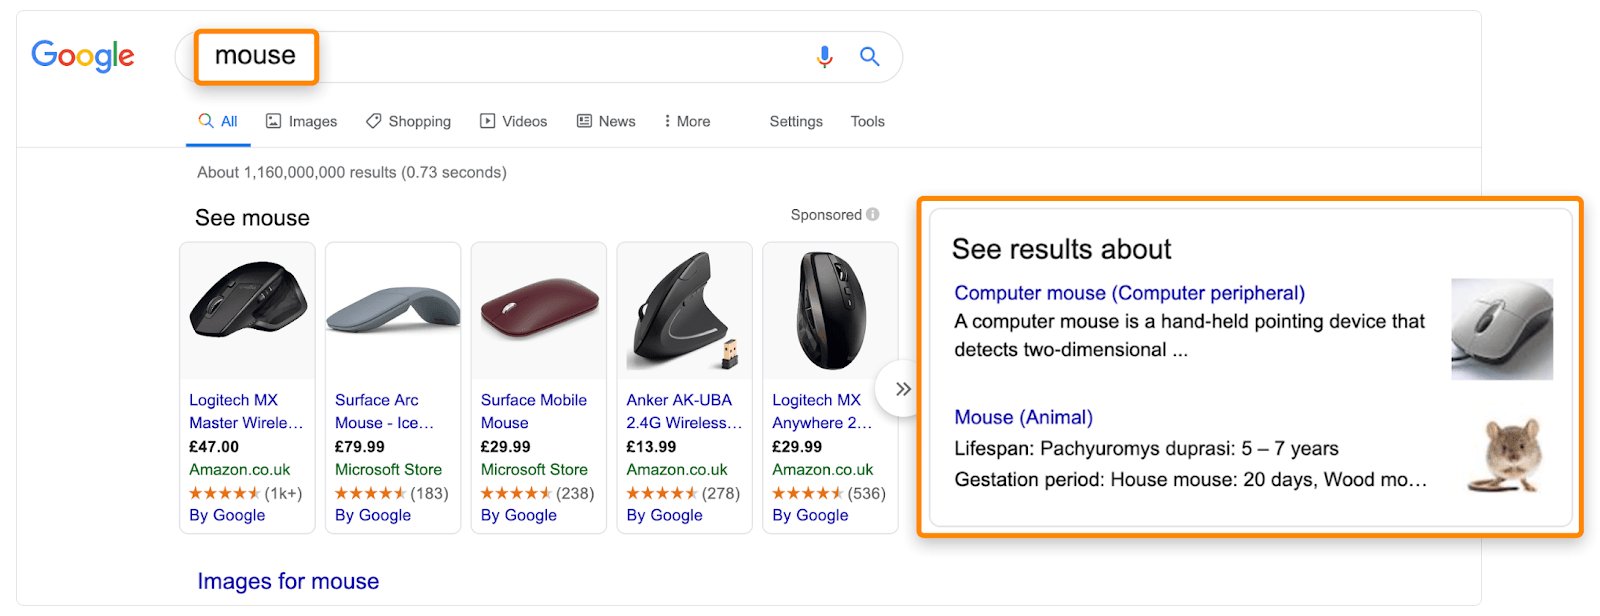 2 mouse knowledge graph